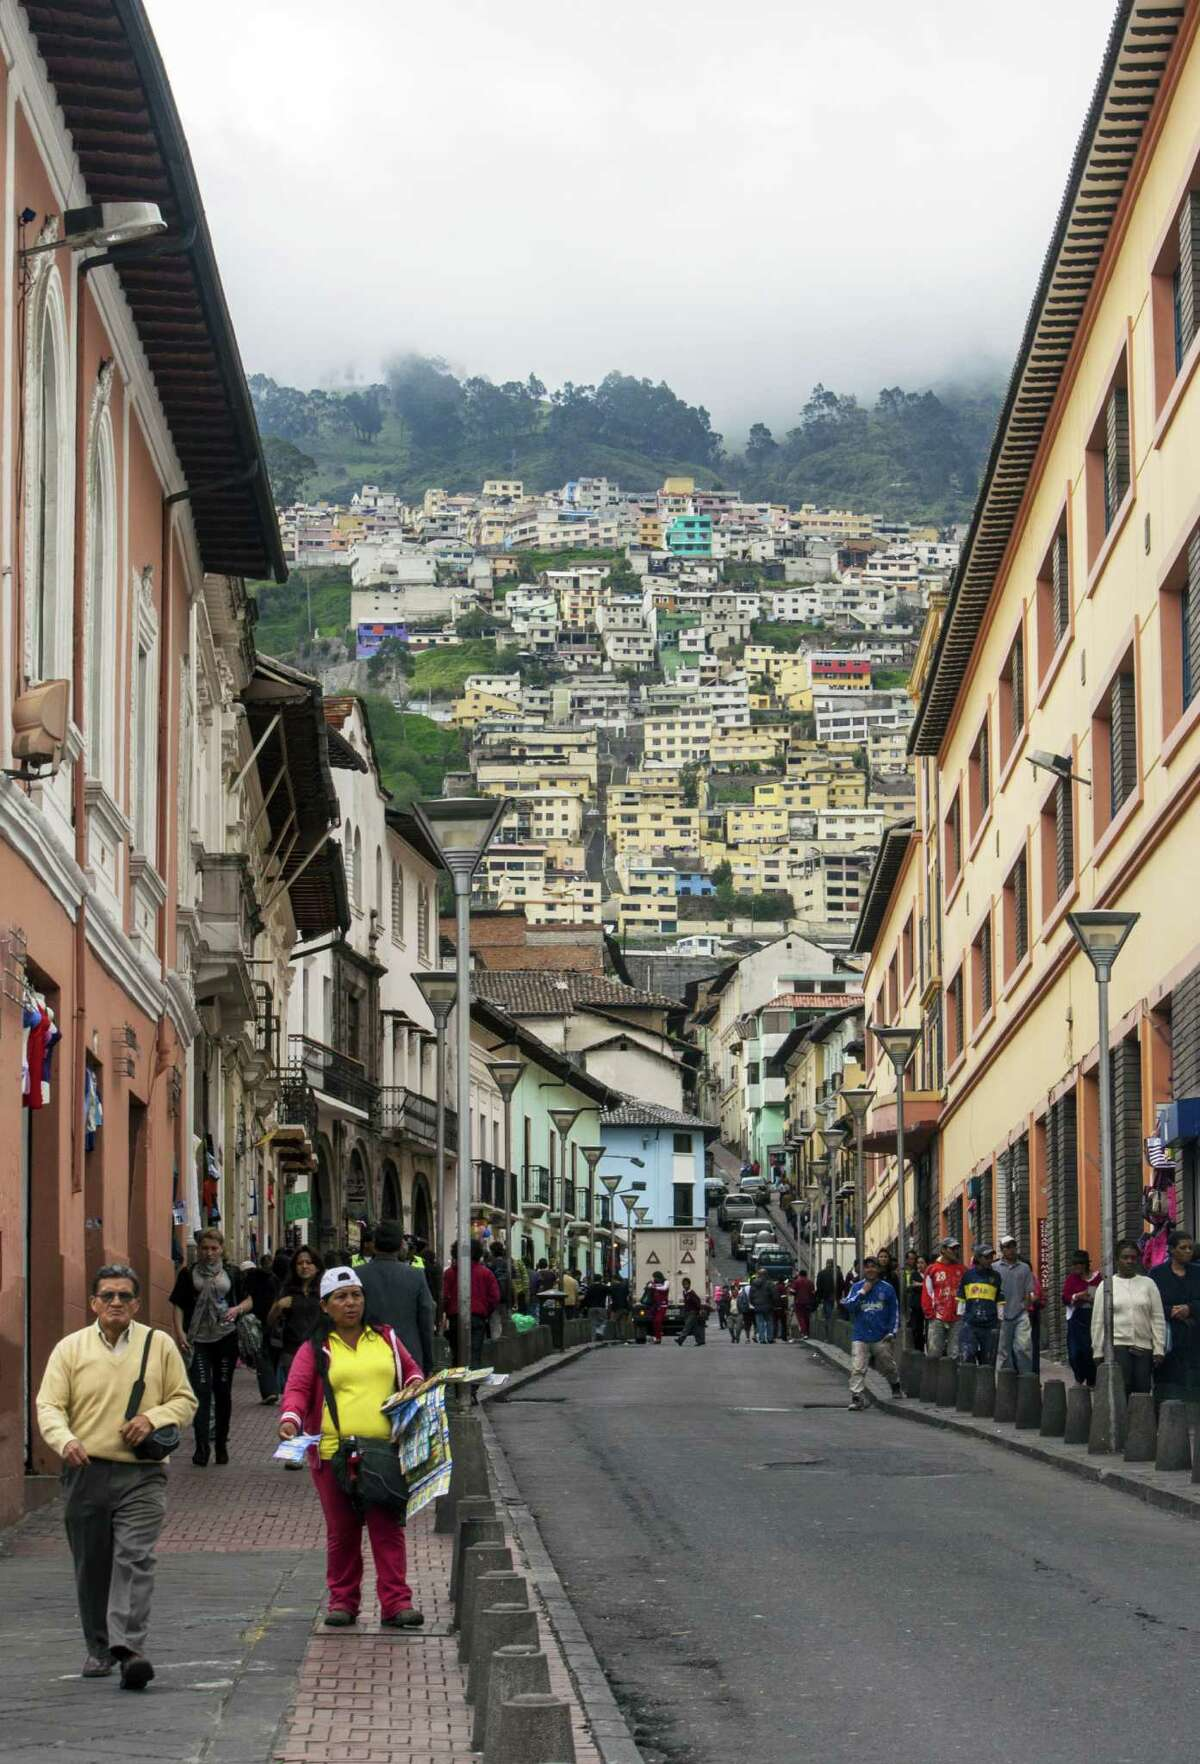 Quito offers a nicely preserved historic district.